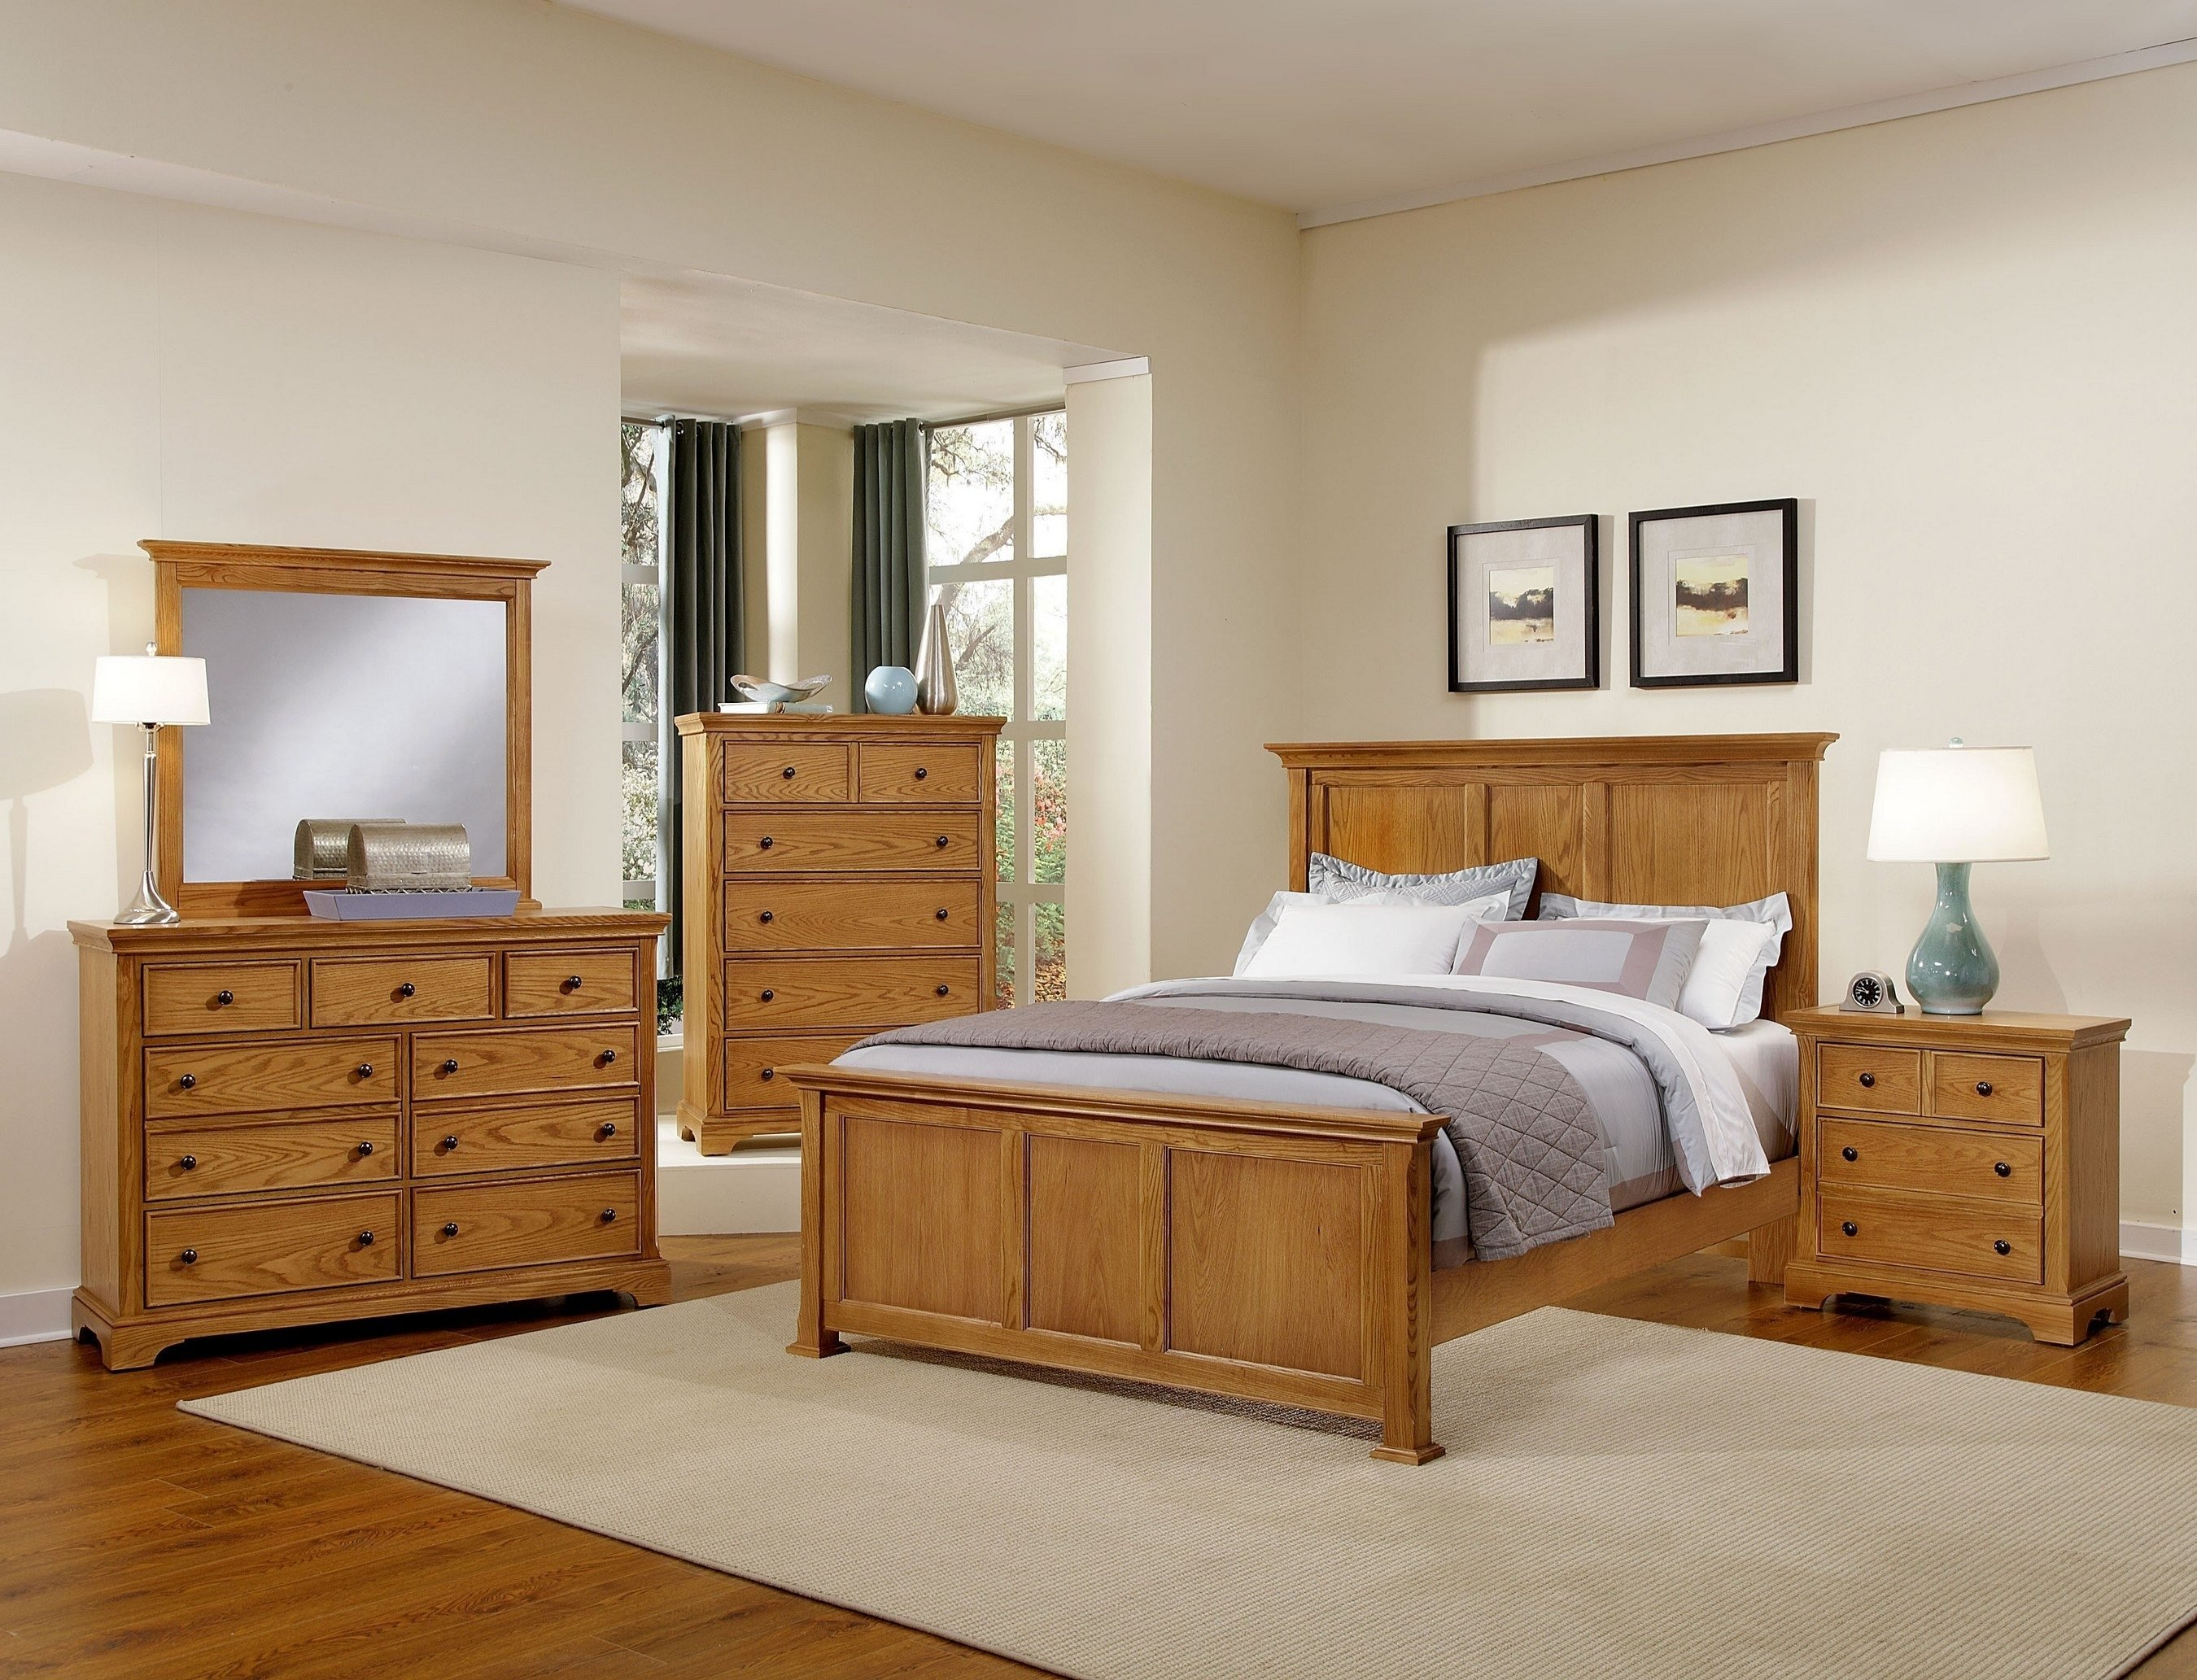 Best Cheap Wood Bedroom Furniture Big Lot Furniture Bedroom With Pictures